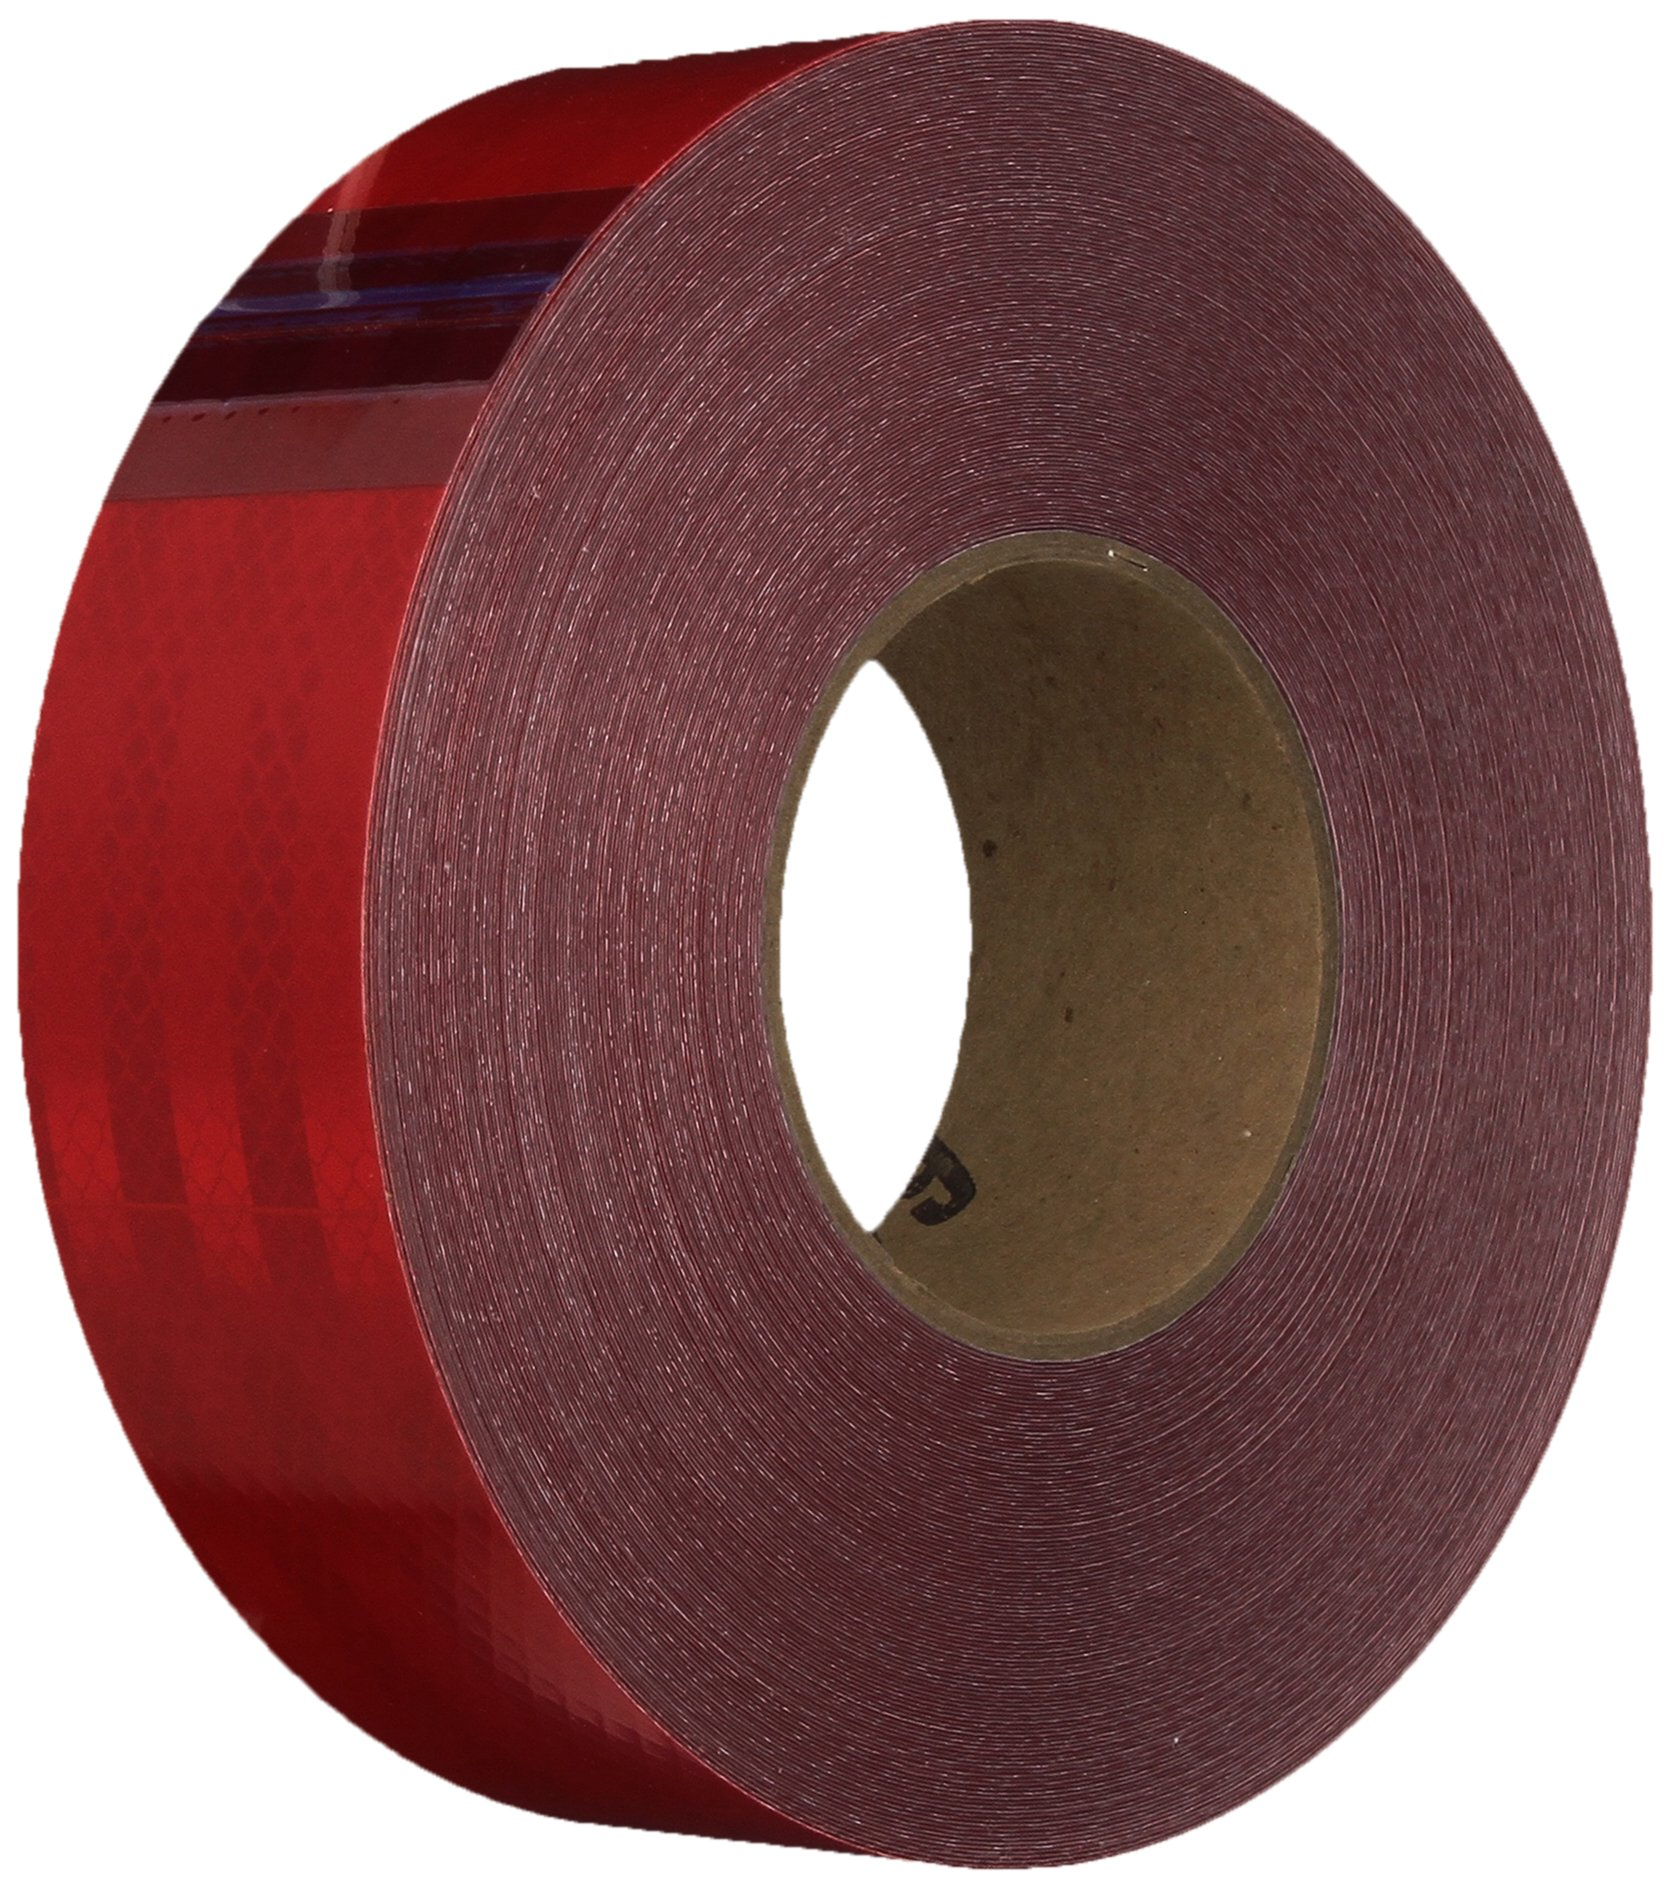 3M 3432 Red Micro Prismatic Sheeting Reflective Tape – 2 in. X 150 ft. Non Metalized Adhesive Tape Roll. Safety Tape